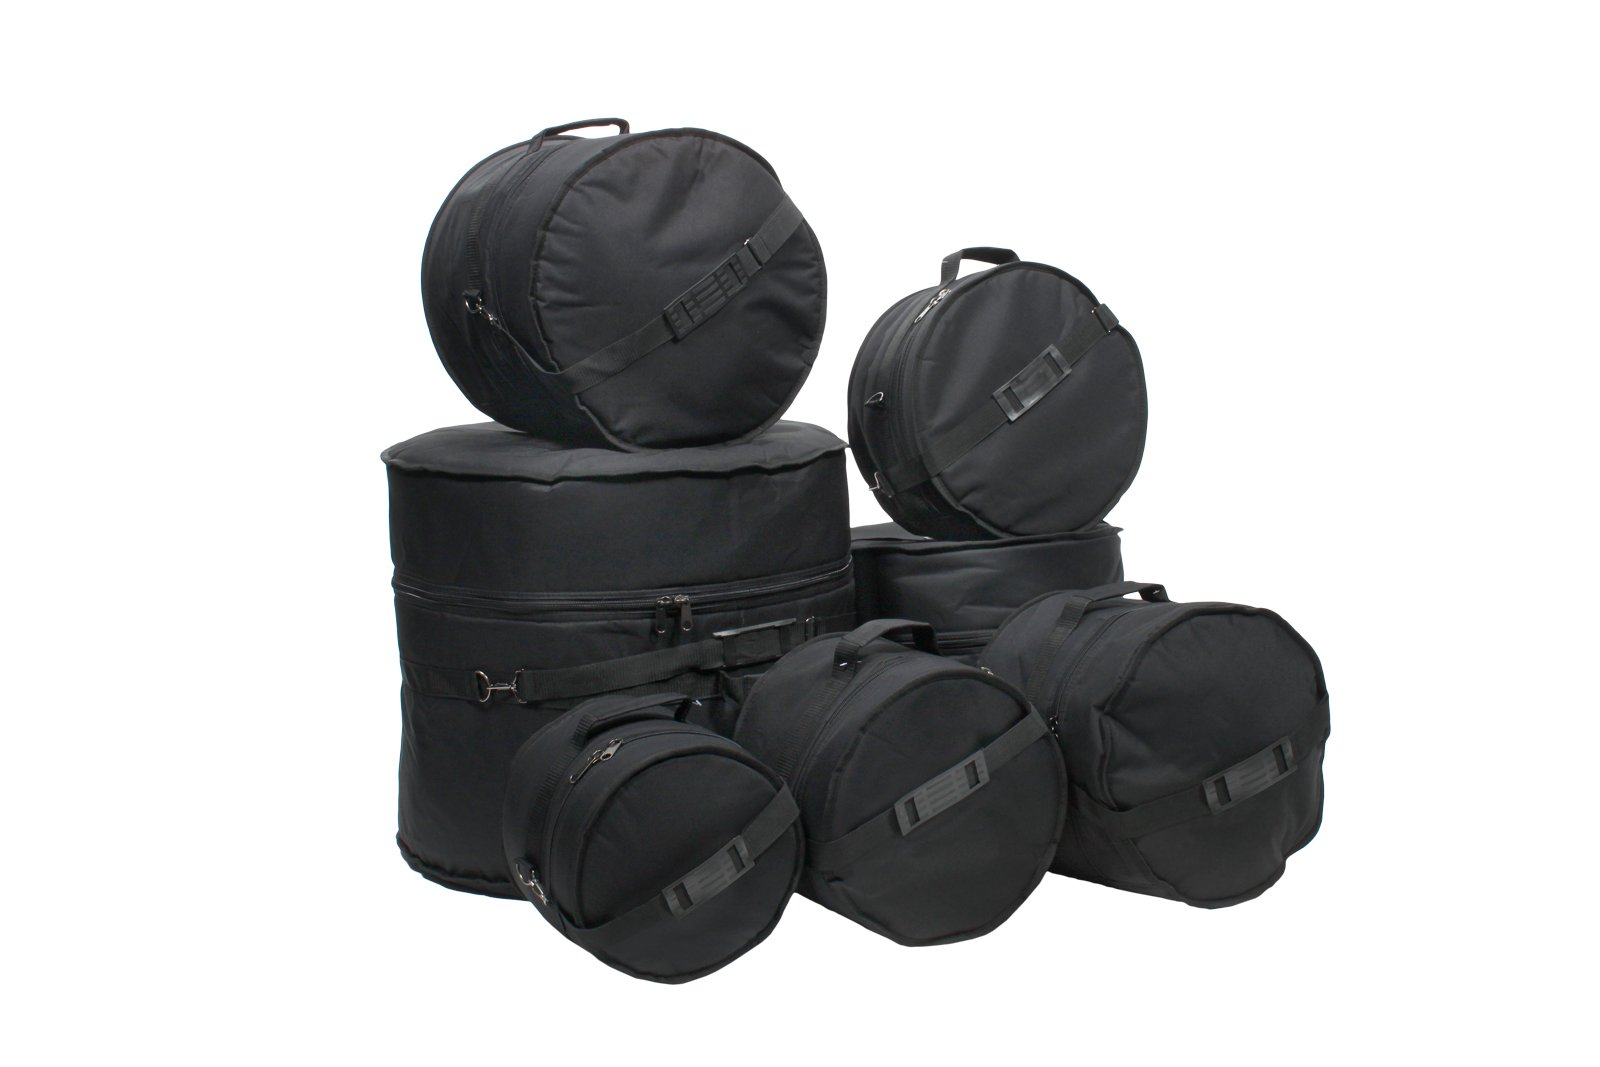 XSPRO 7 Piece Deluxe Padded Drum Bag Set for DW Pacific X7 & Concept Series